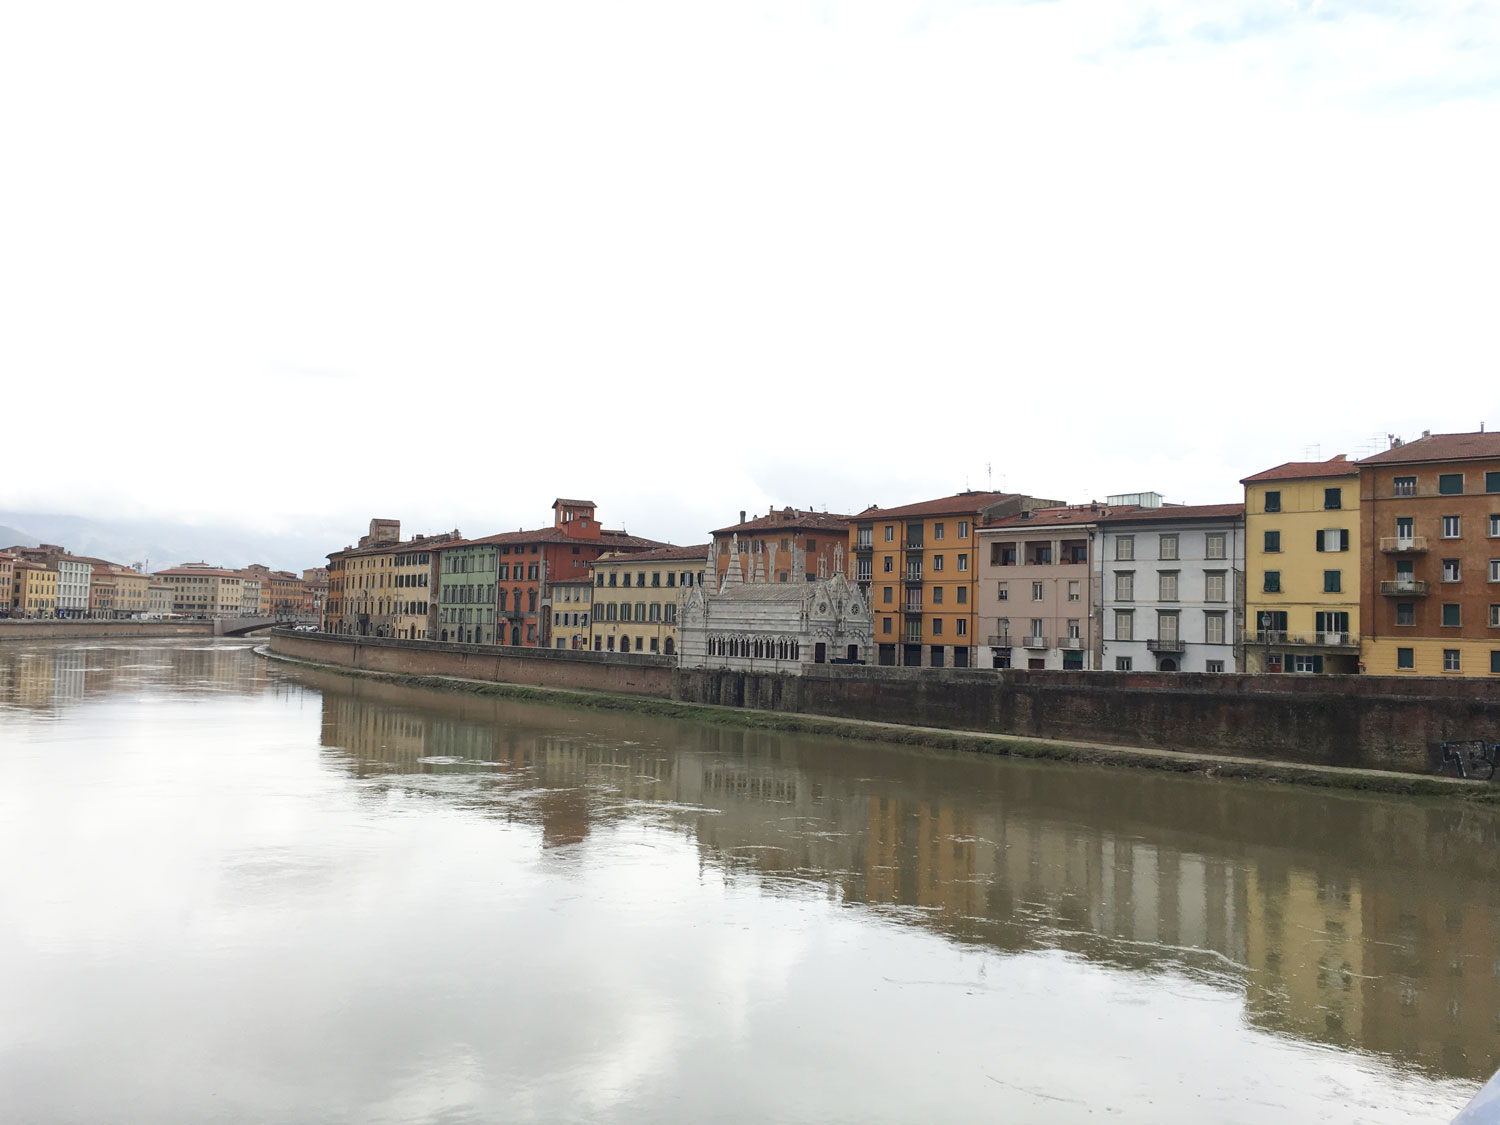 View along the Arno River, Pisa